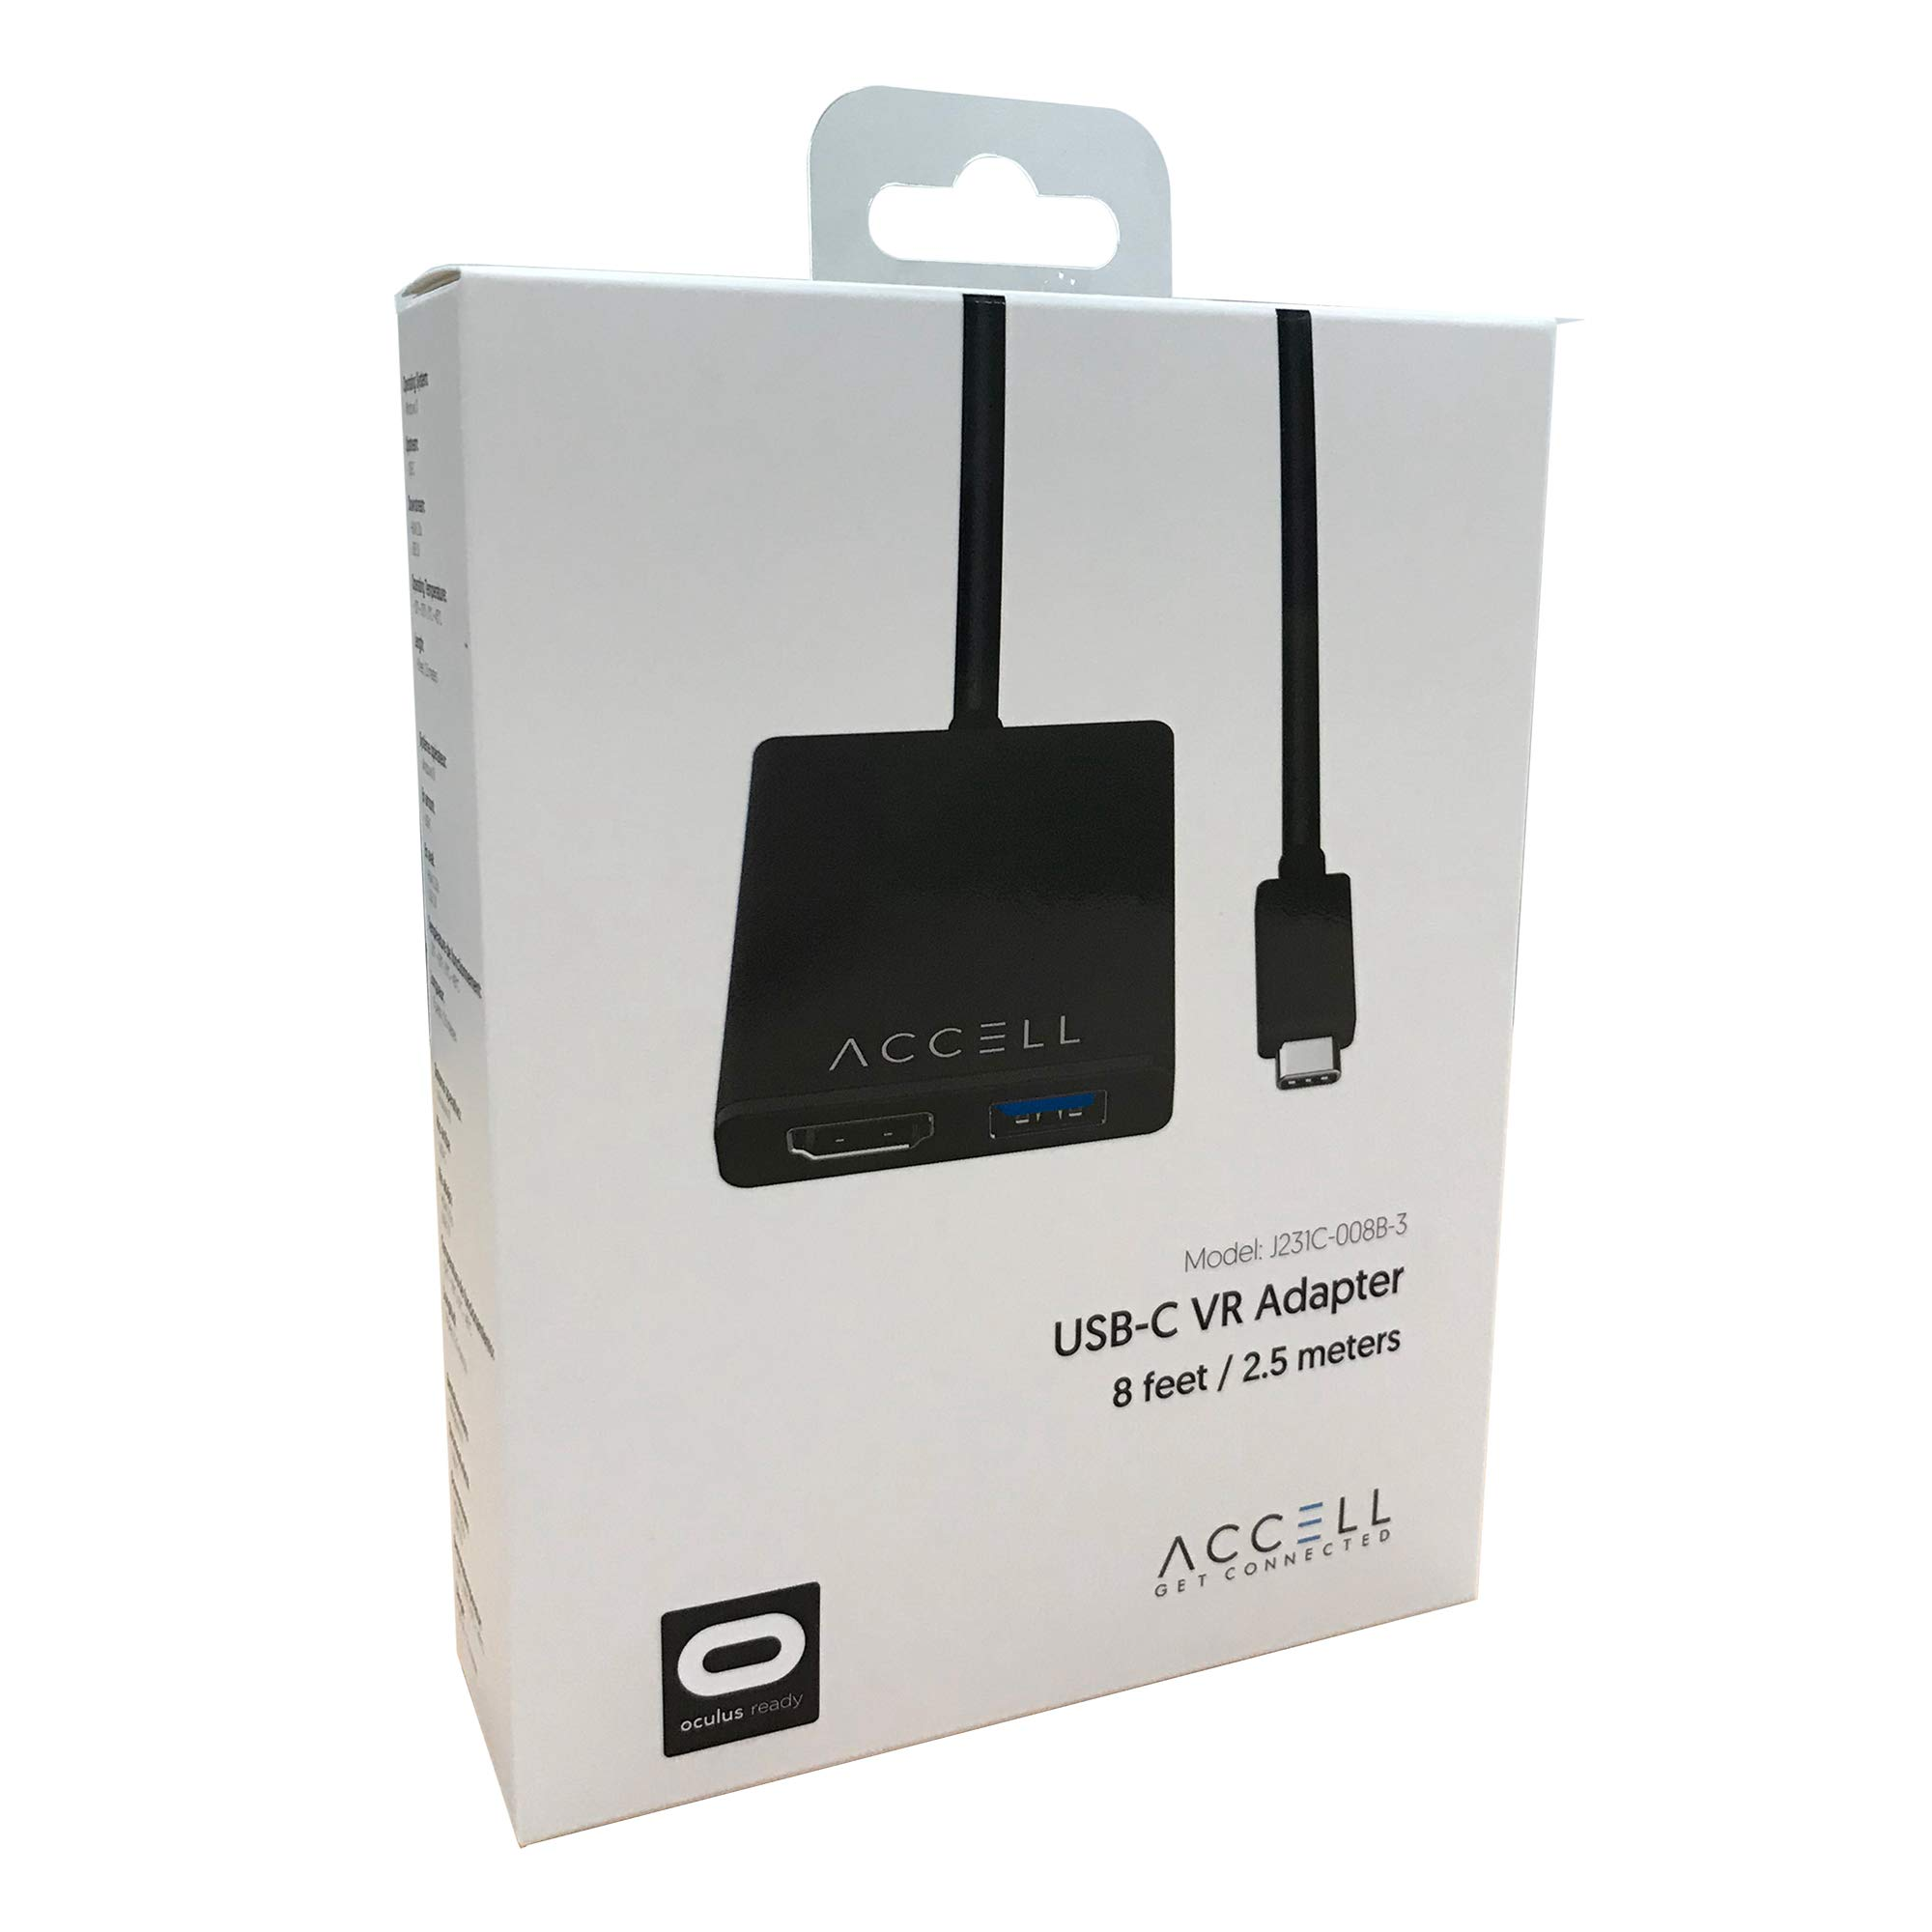 Accell USB-C VR Adapter - USB-C to HDMI & USB Compatible with Oculus Rift, HTC Vive, and Windows Mixed Reality Headsets including Samsung Odyssey+ Dell Visor Lenovo Explorer HP Acer & Asus WMR by Accell (Image #6)